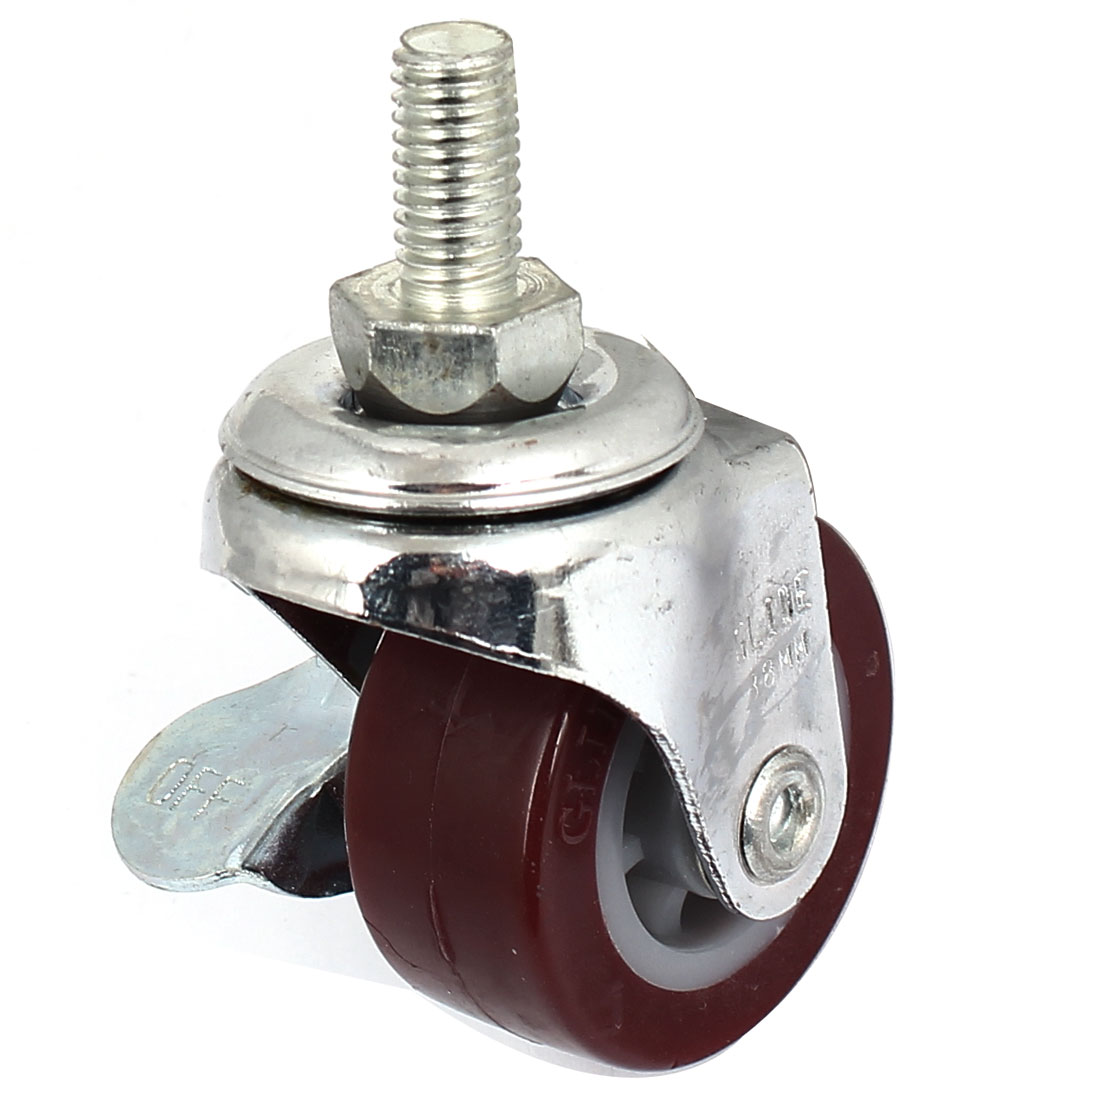 65mm Single Wheel 360 Degree Side Brake Threaded Stem Swivel Caster Burgundy